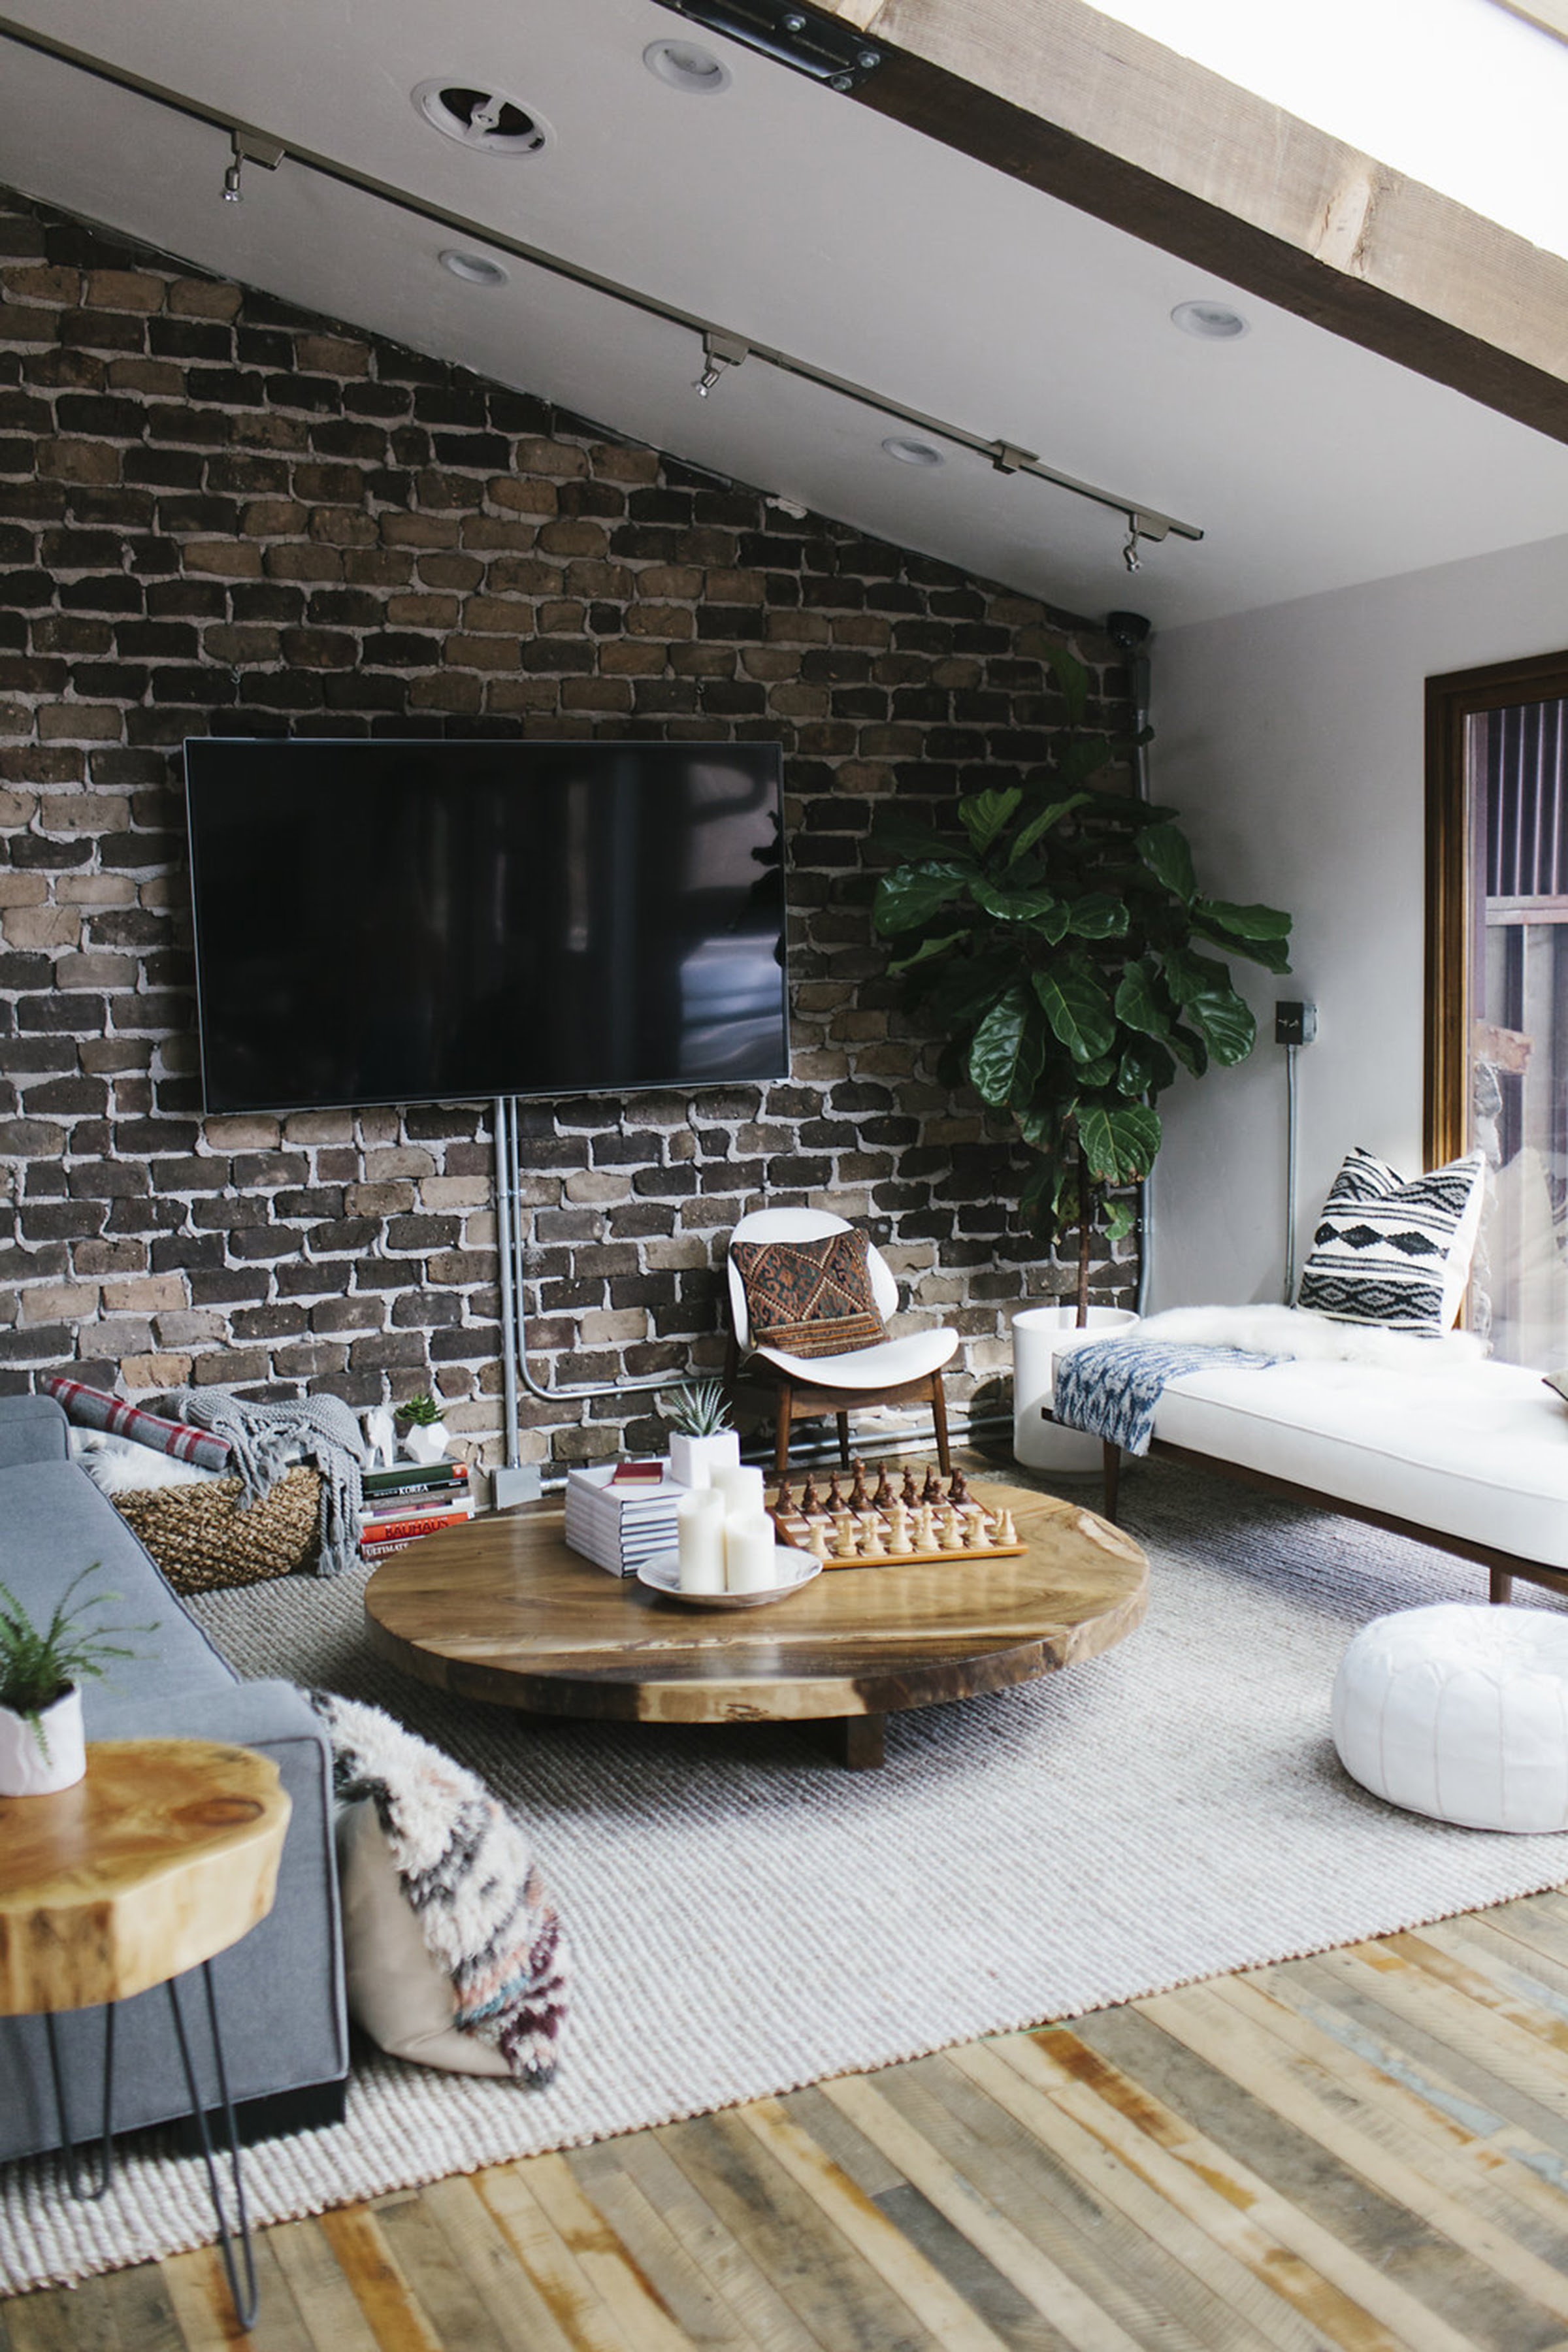 tour around my home: the entry & living room | See Jane Blog